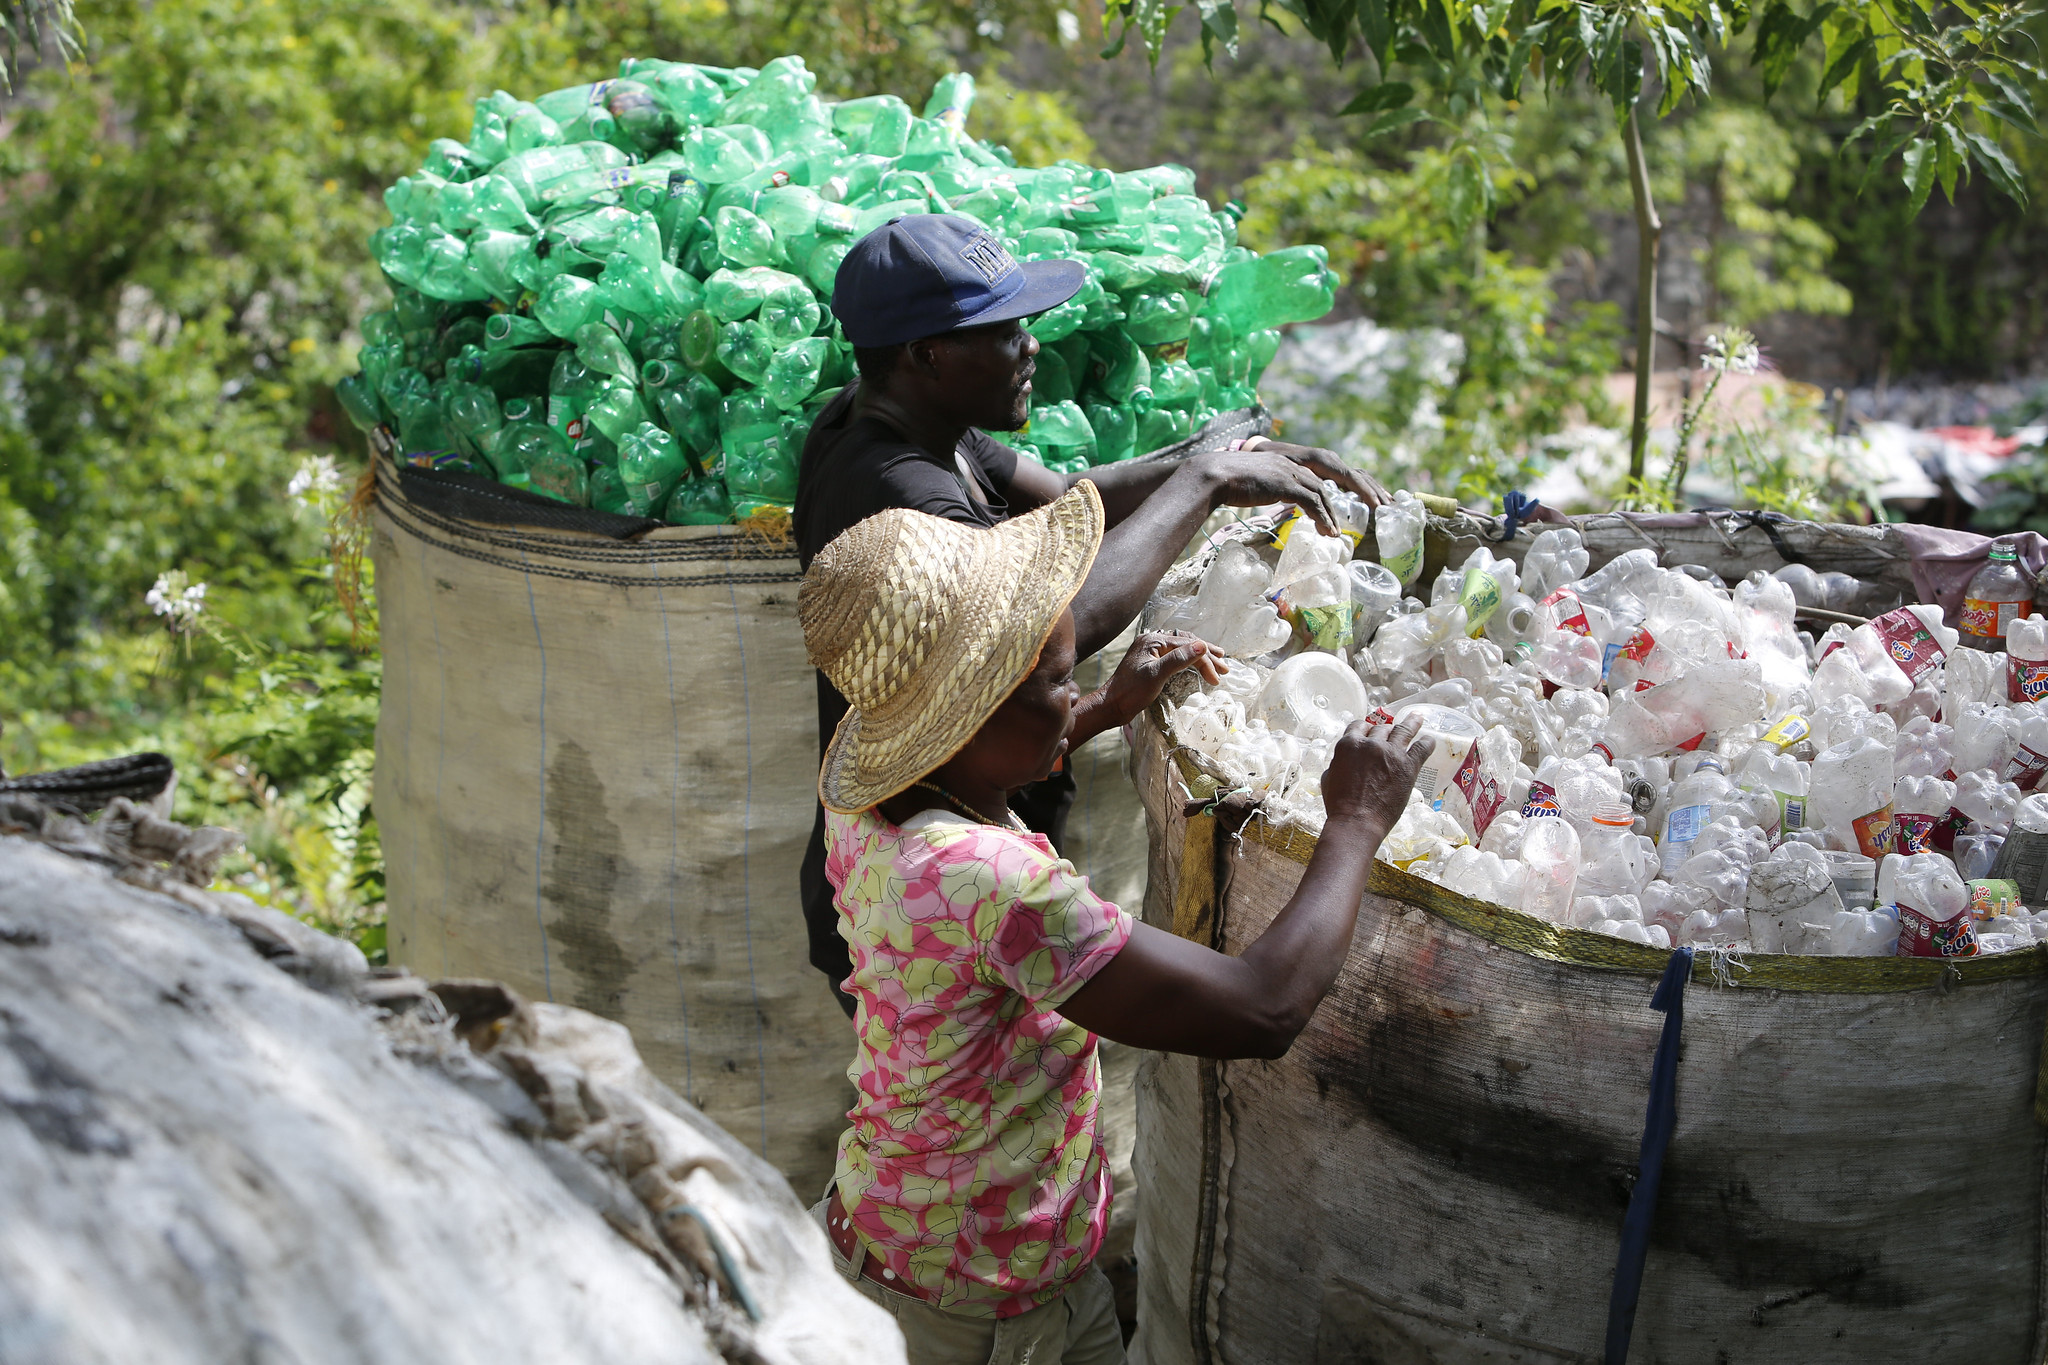 Read more about the article Collection of PET bottles for recycling in Port-au-Prince, Haiti.